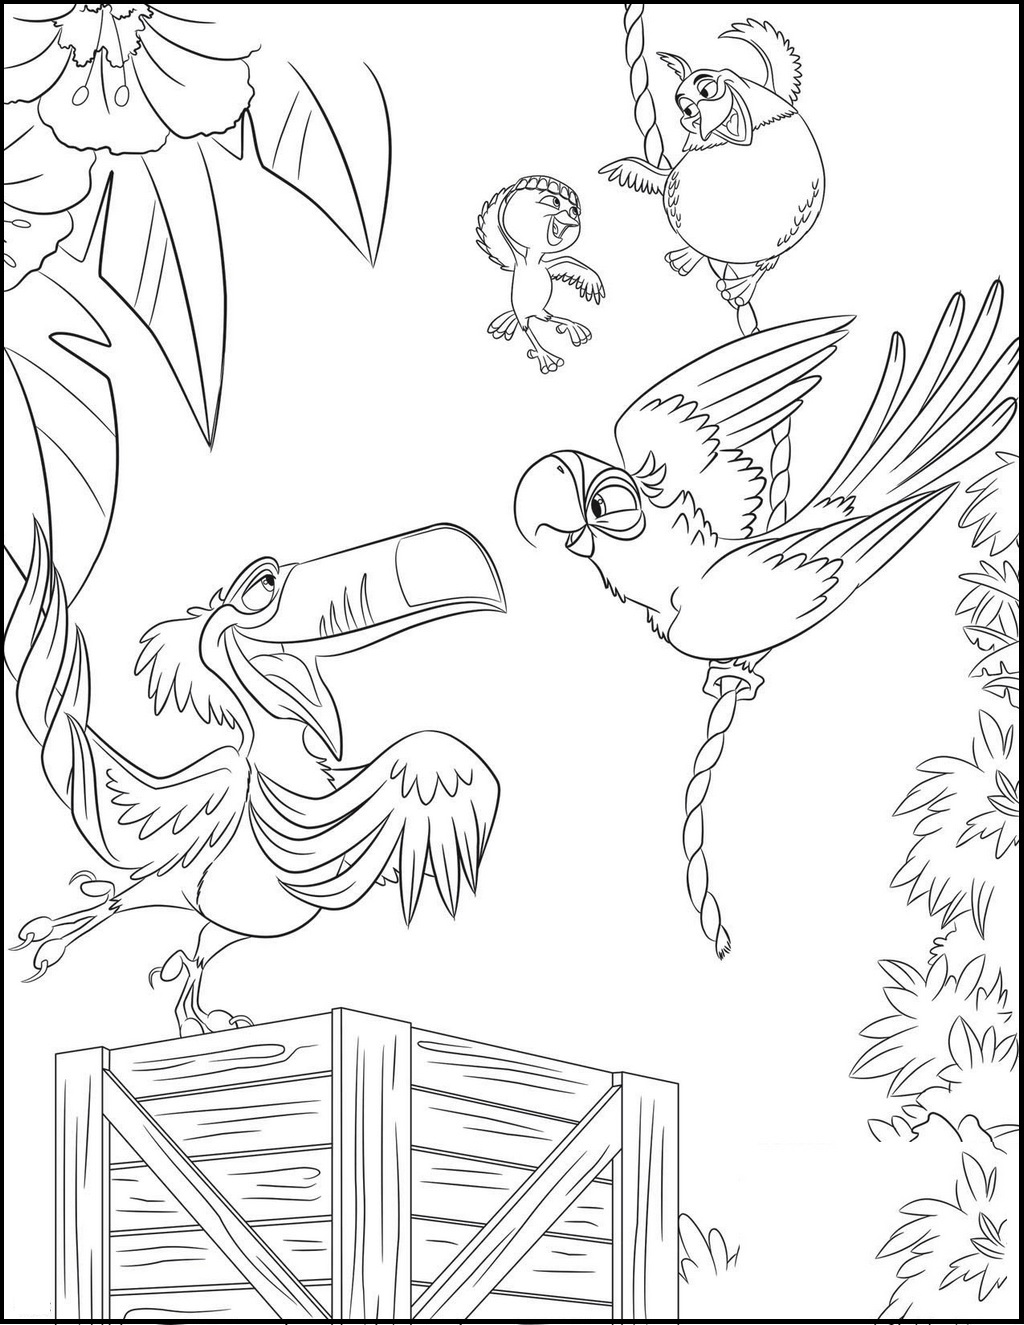 rio coloring and drawing page